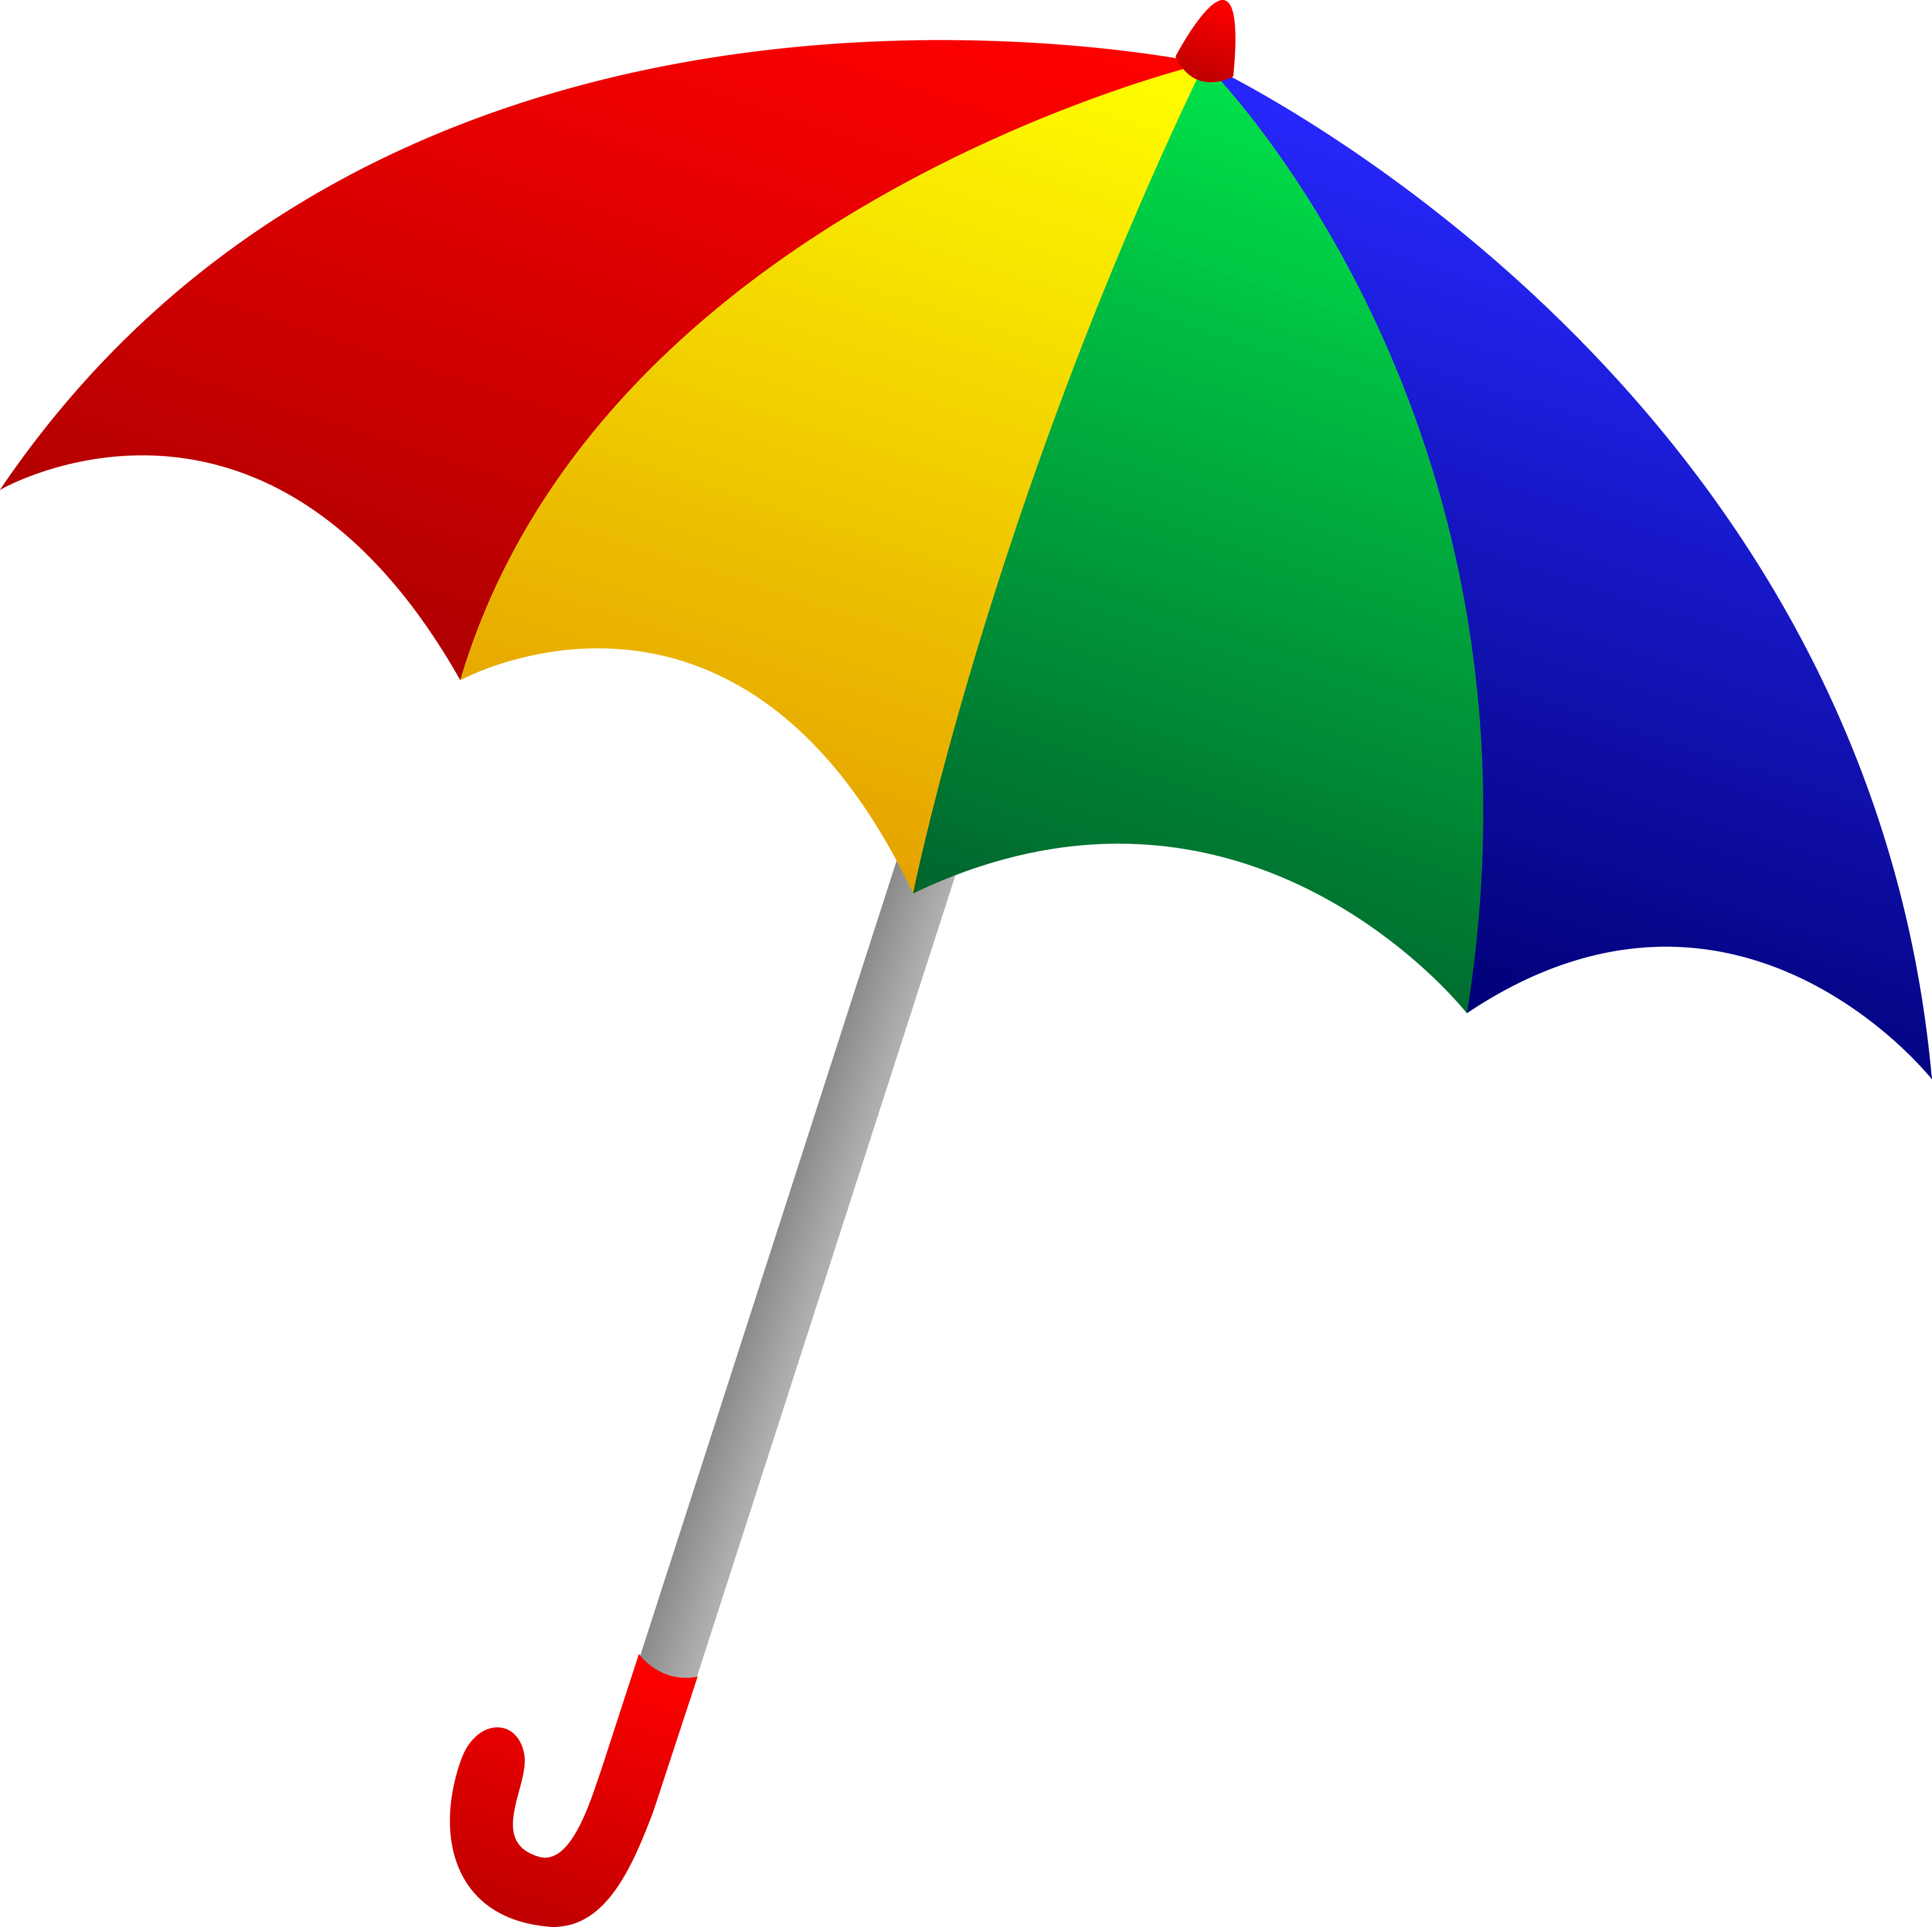 Red Umbrela Png Image Free Clip Art Umbrella Drawing Umbrella